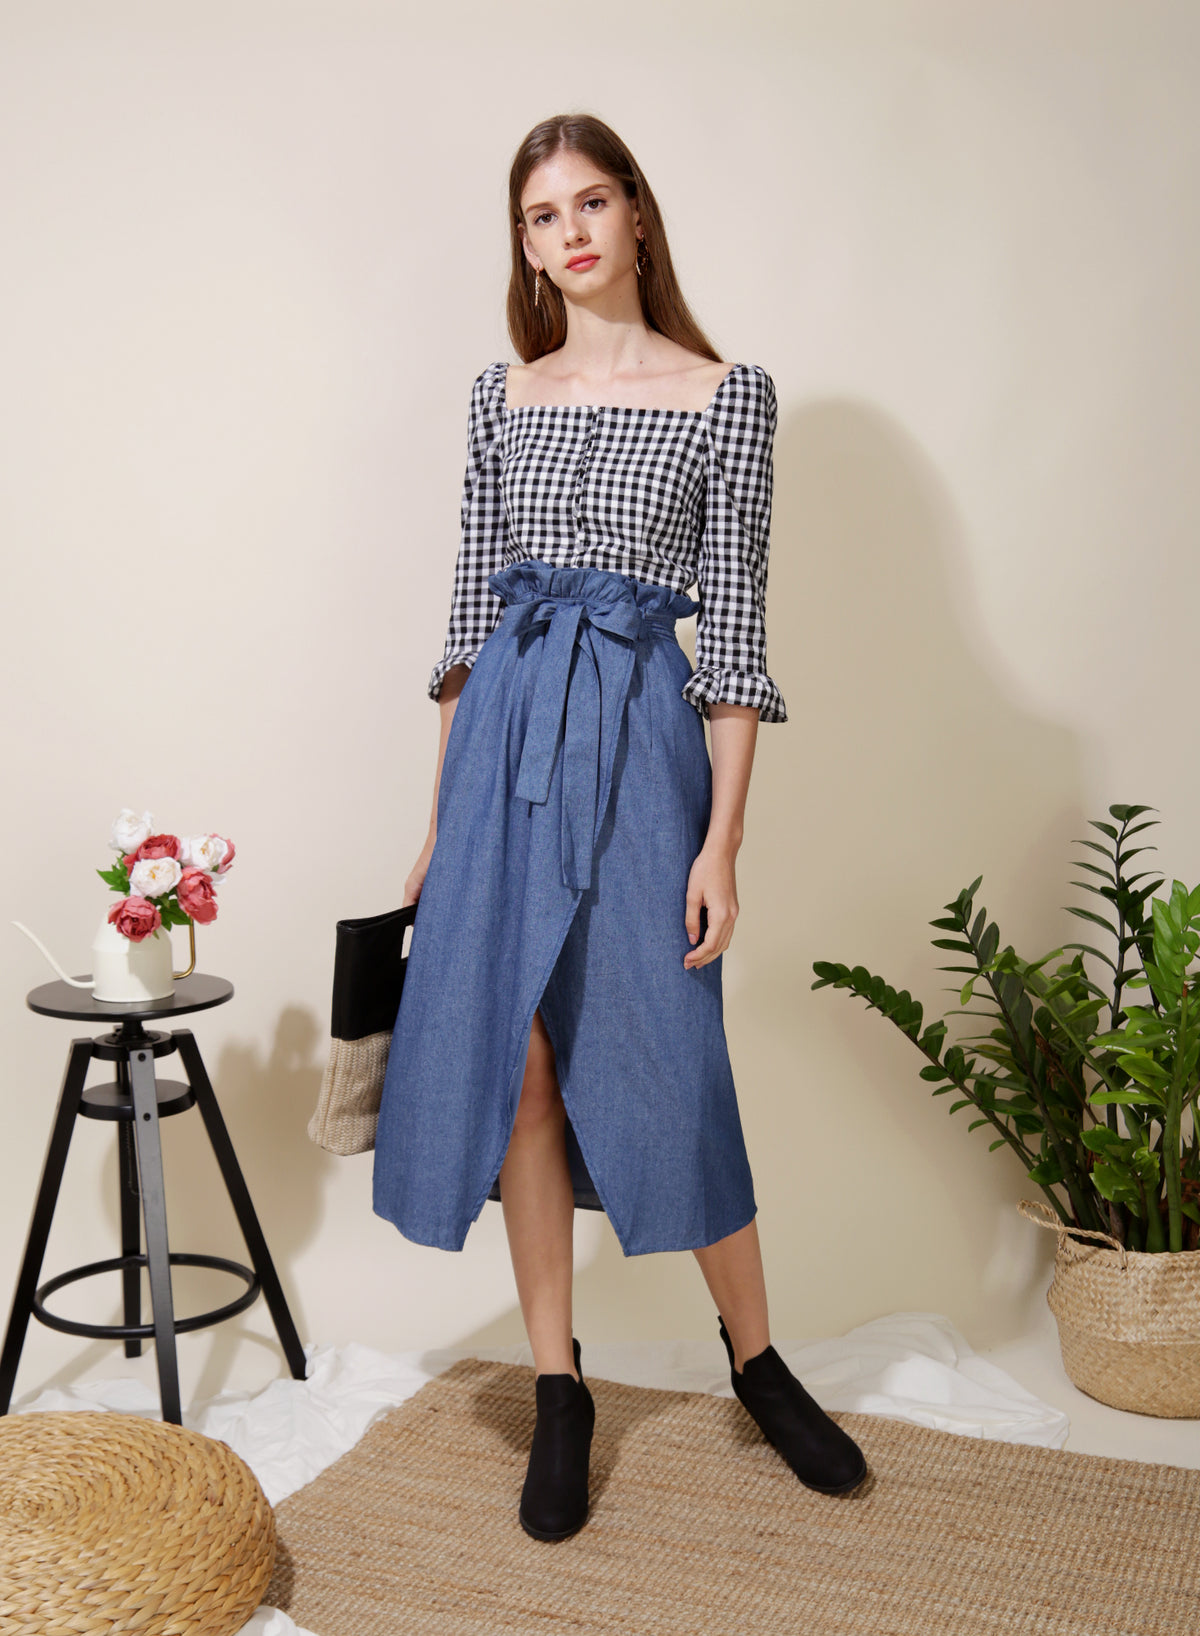 Honour Button Down Sleeved Top (B/W Gingham) at $ 36.00 only sold at And Well Dressed Online Fashion Store Singapore